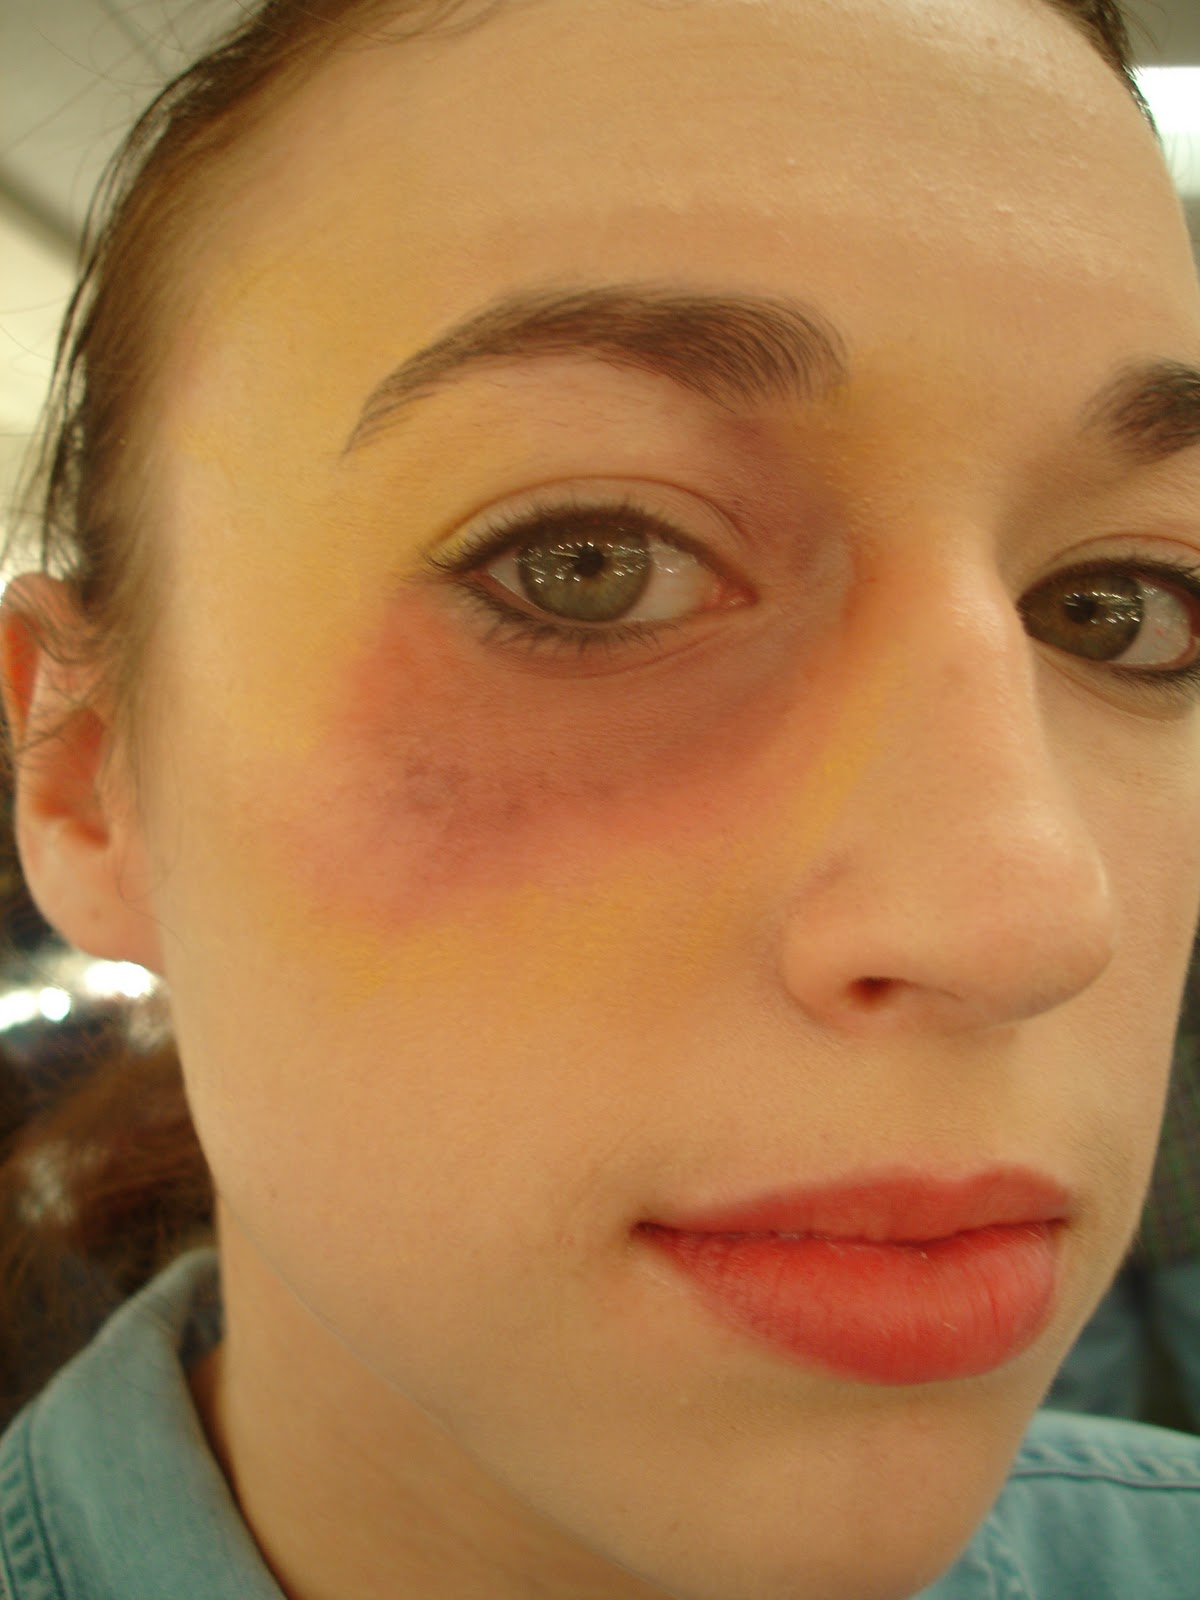 Makeup Ideas bruise makeup : Make-up: Elisa: Bruises u0026 Black eyes